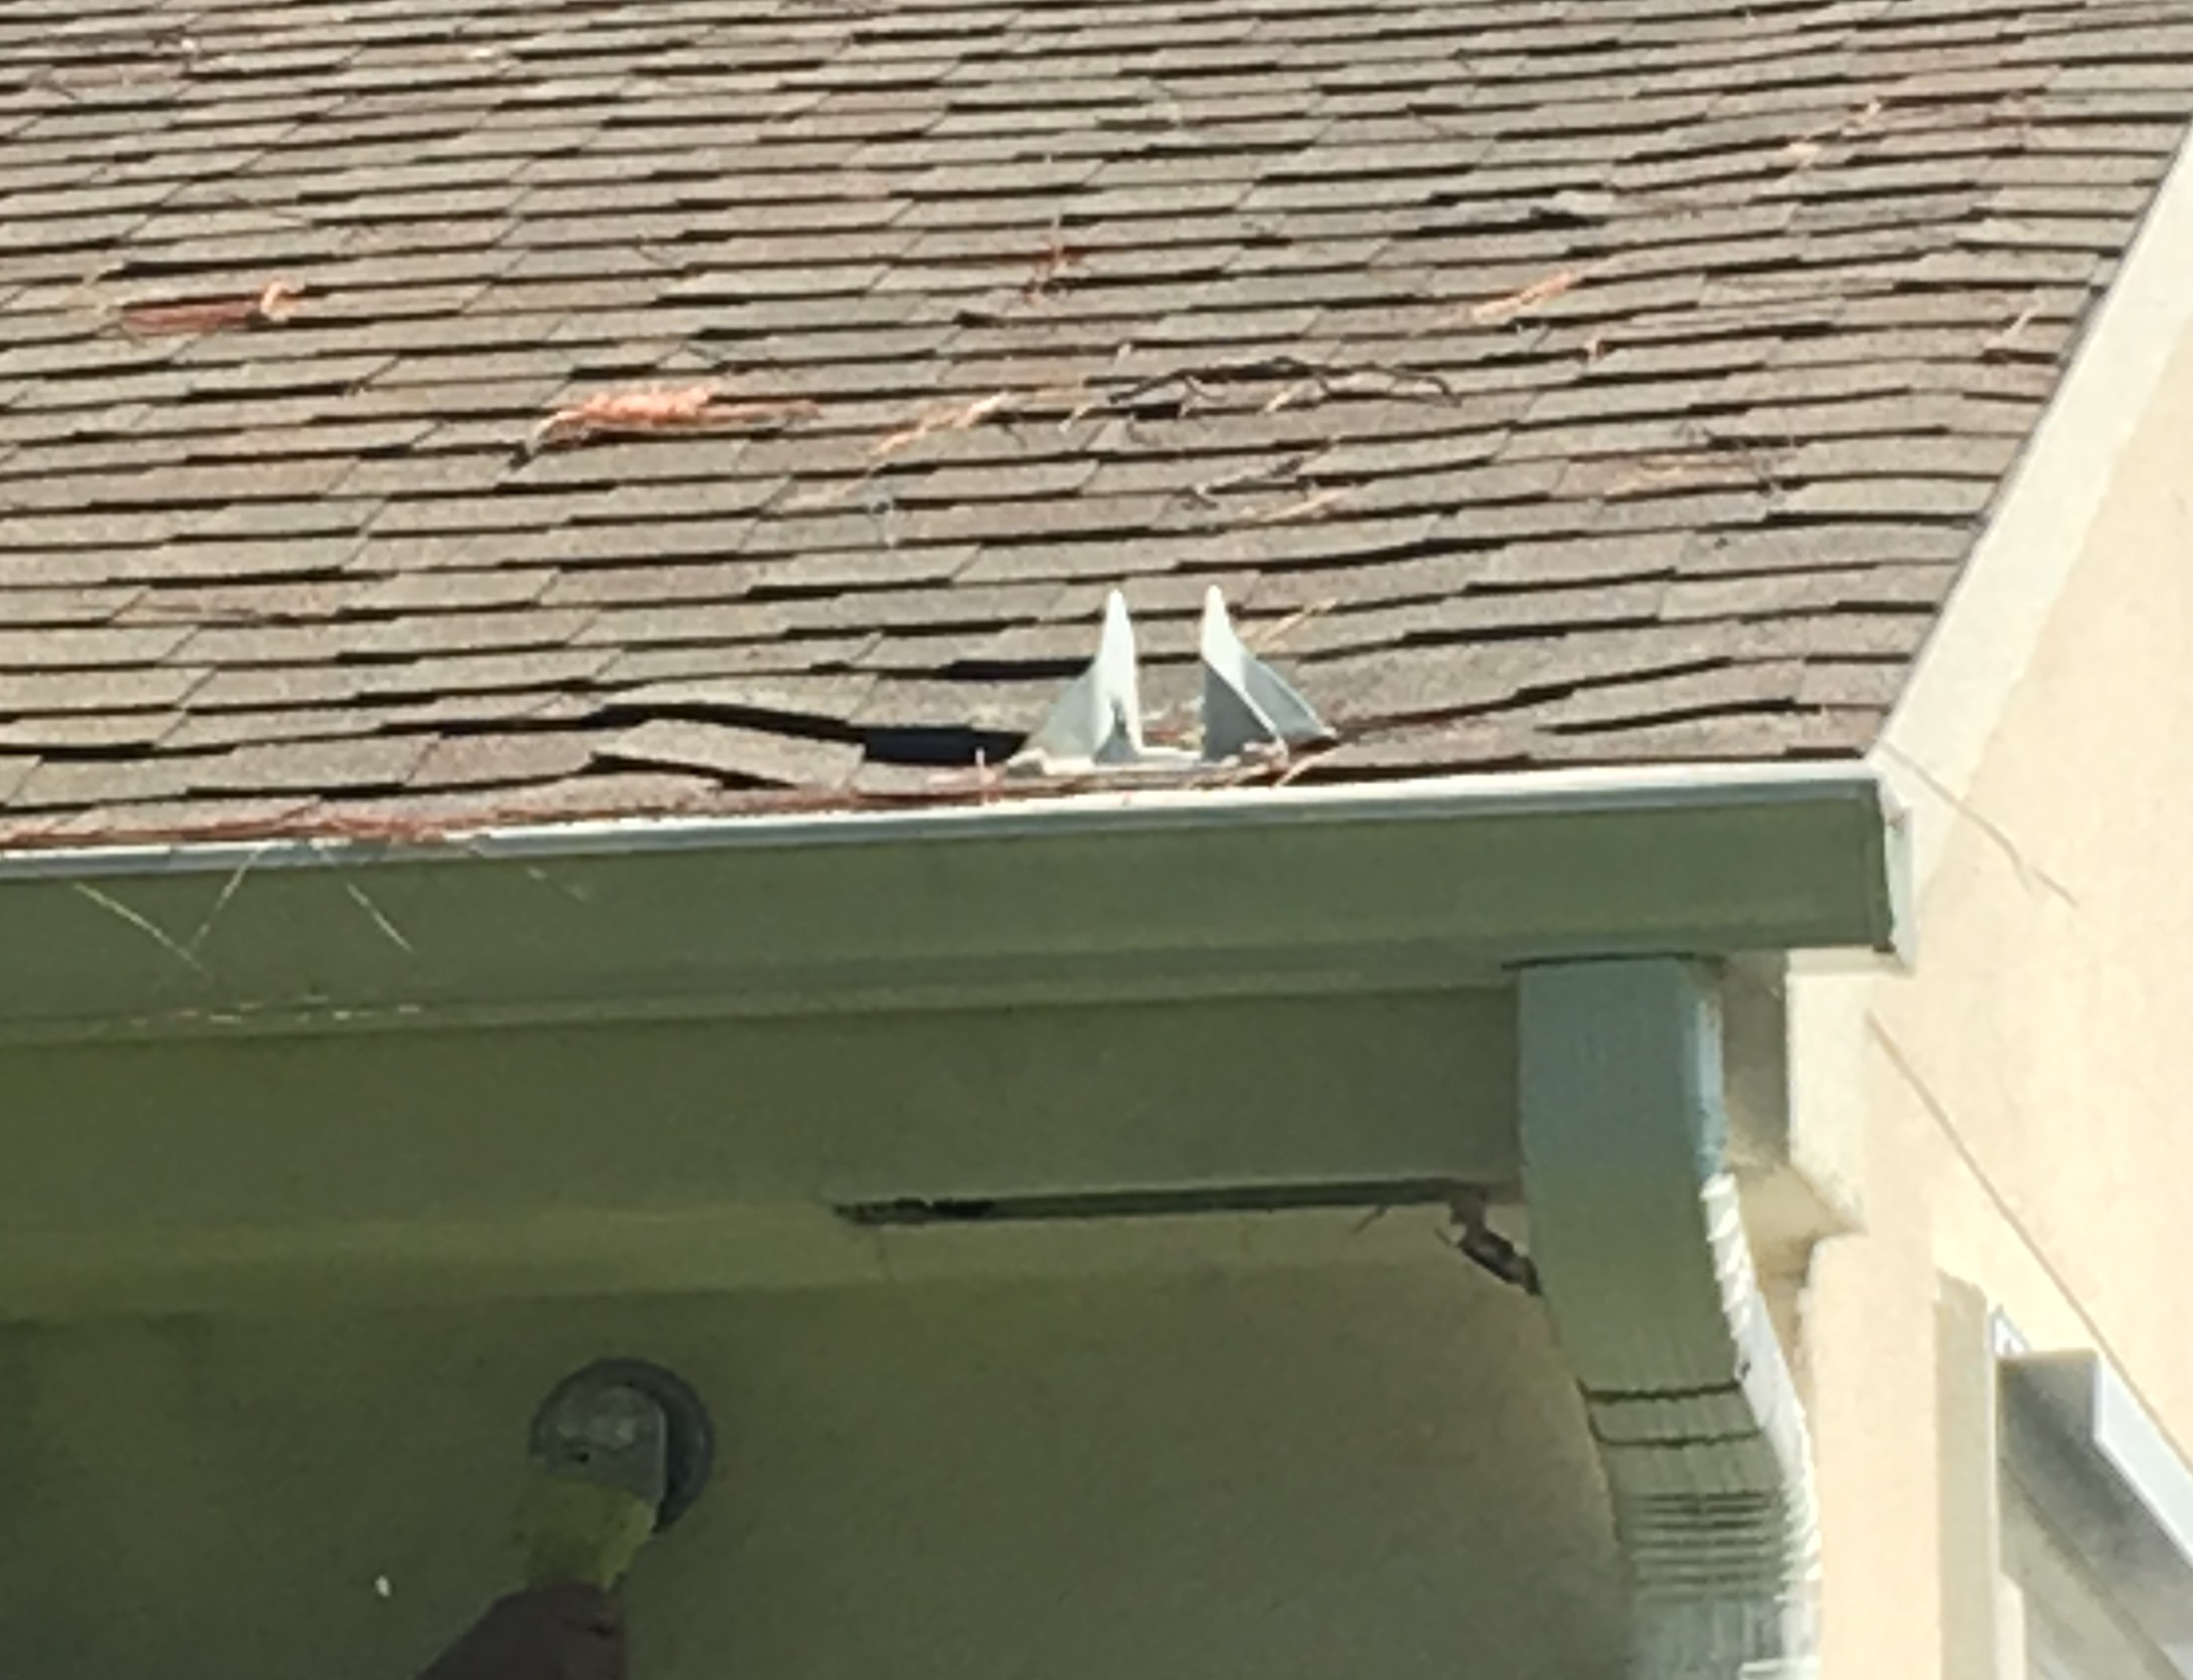 This satellite bracket is installed like many others in Sun City but take a closer look. Do you see the sage in the roof? That is water damage.